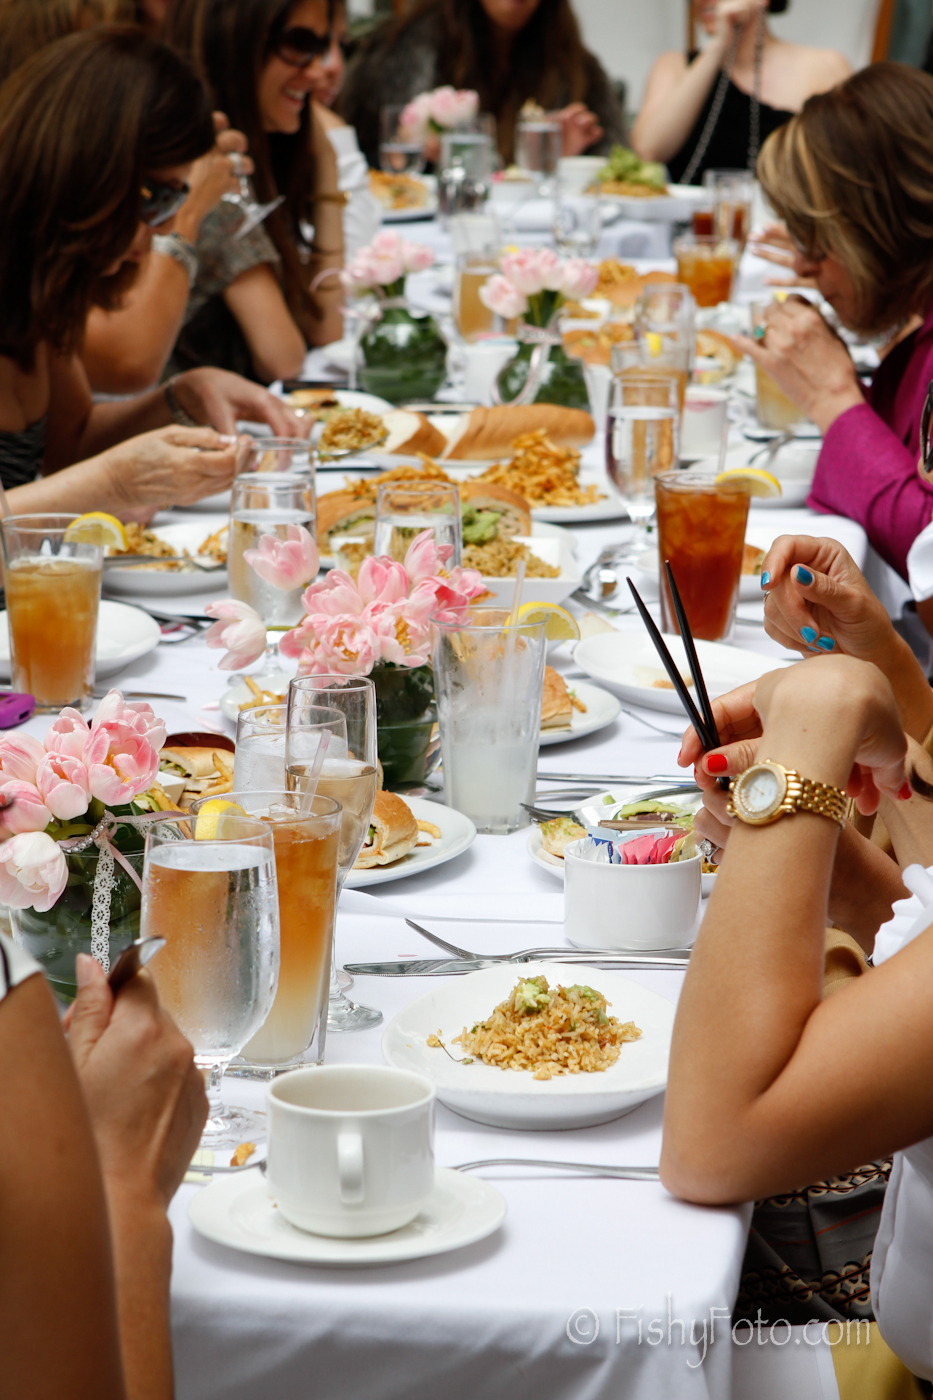 Baby shower at the Mondrian Hotel in Los Angeles #fishyfoto